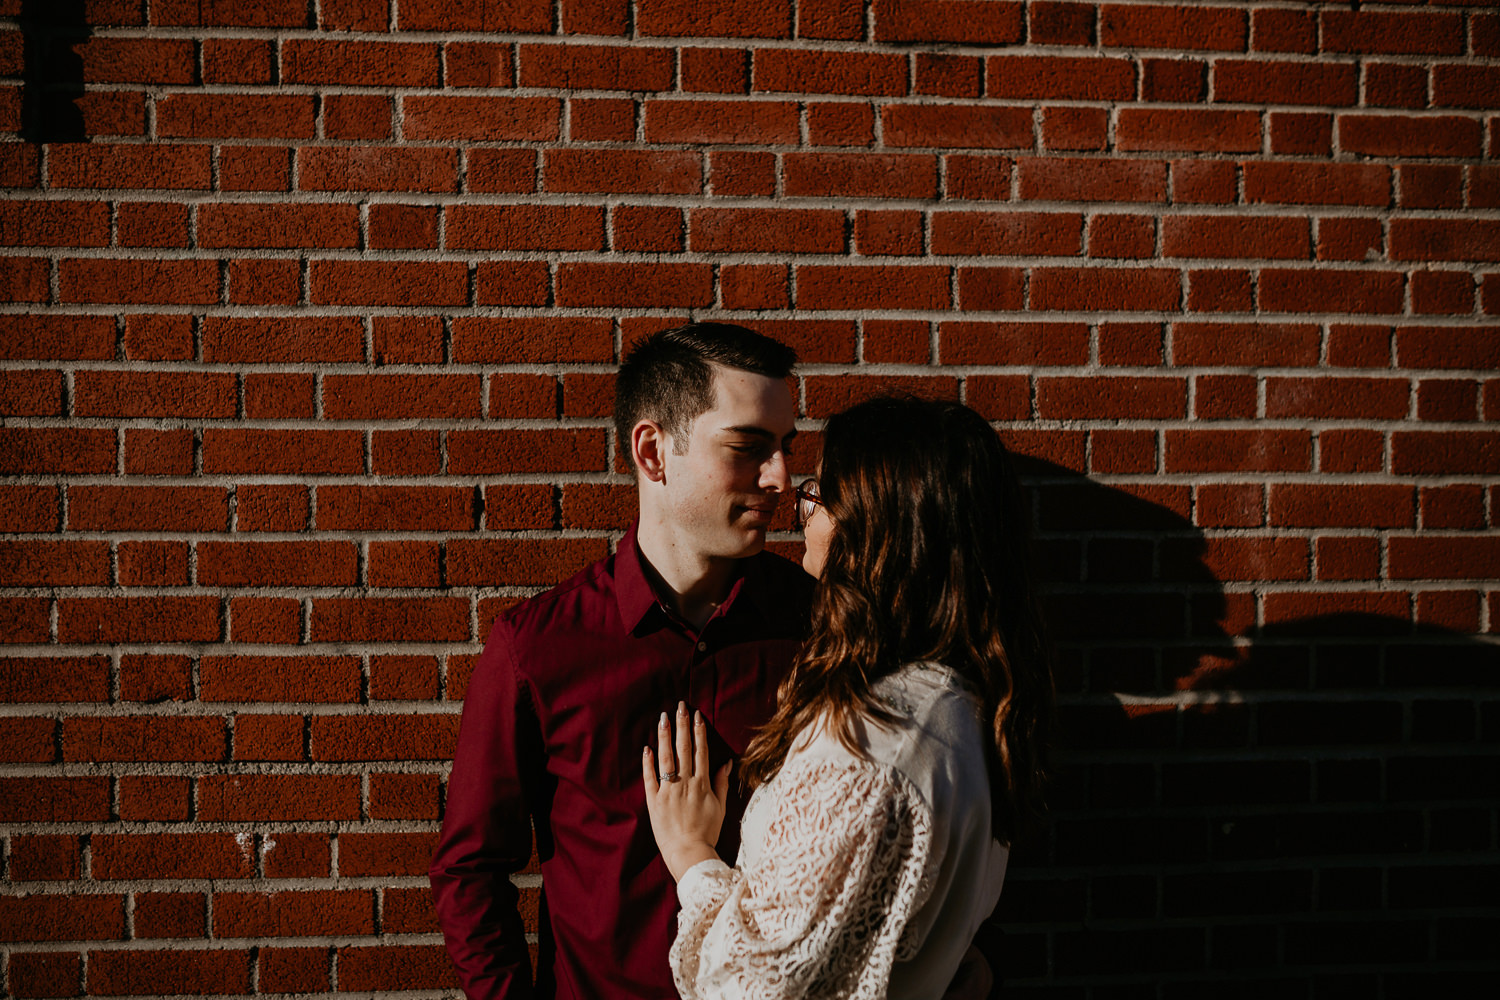 couple together looking at each other her hands on his chest in front of brick wall